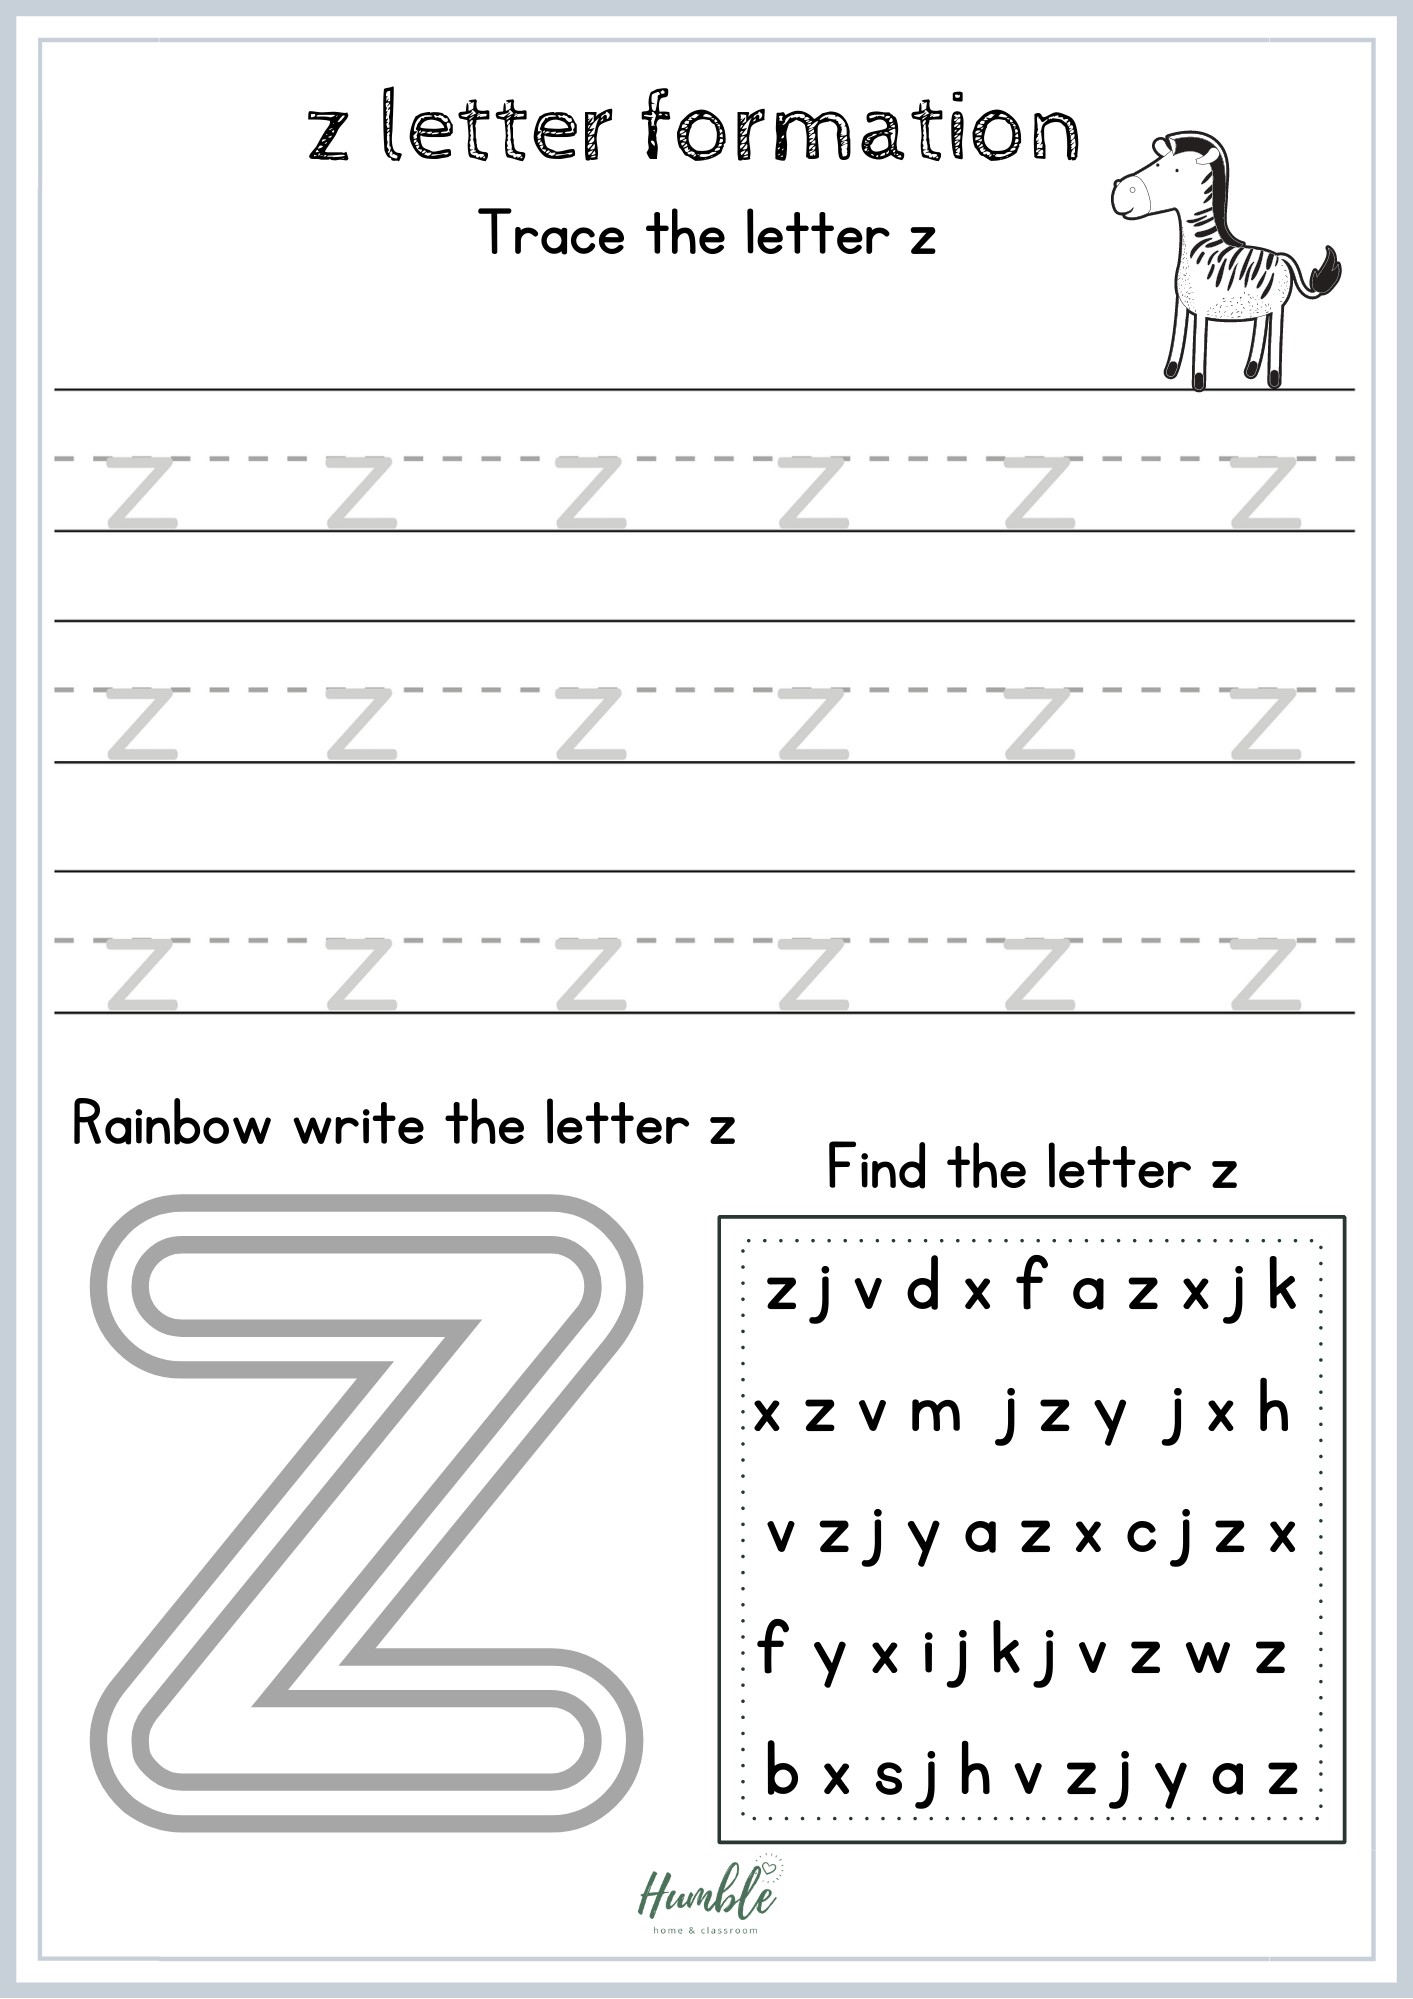 Free Printable Z Phonics Letter Formation Sheet